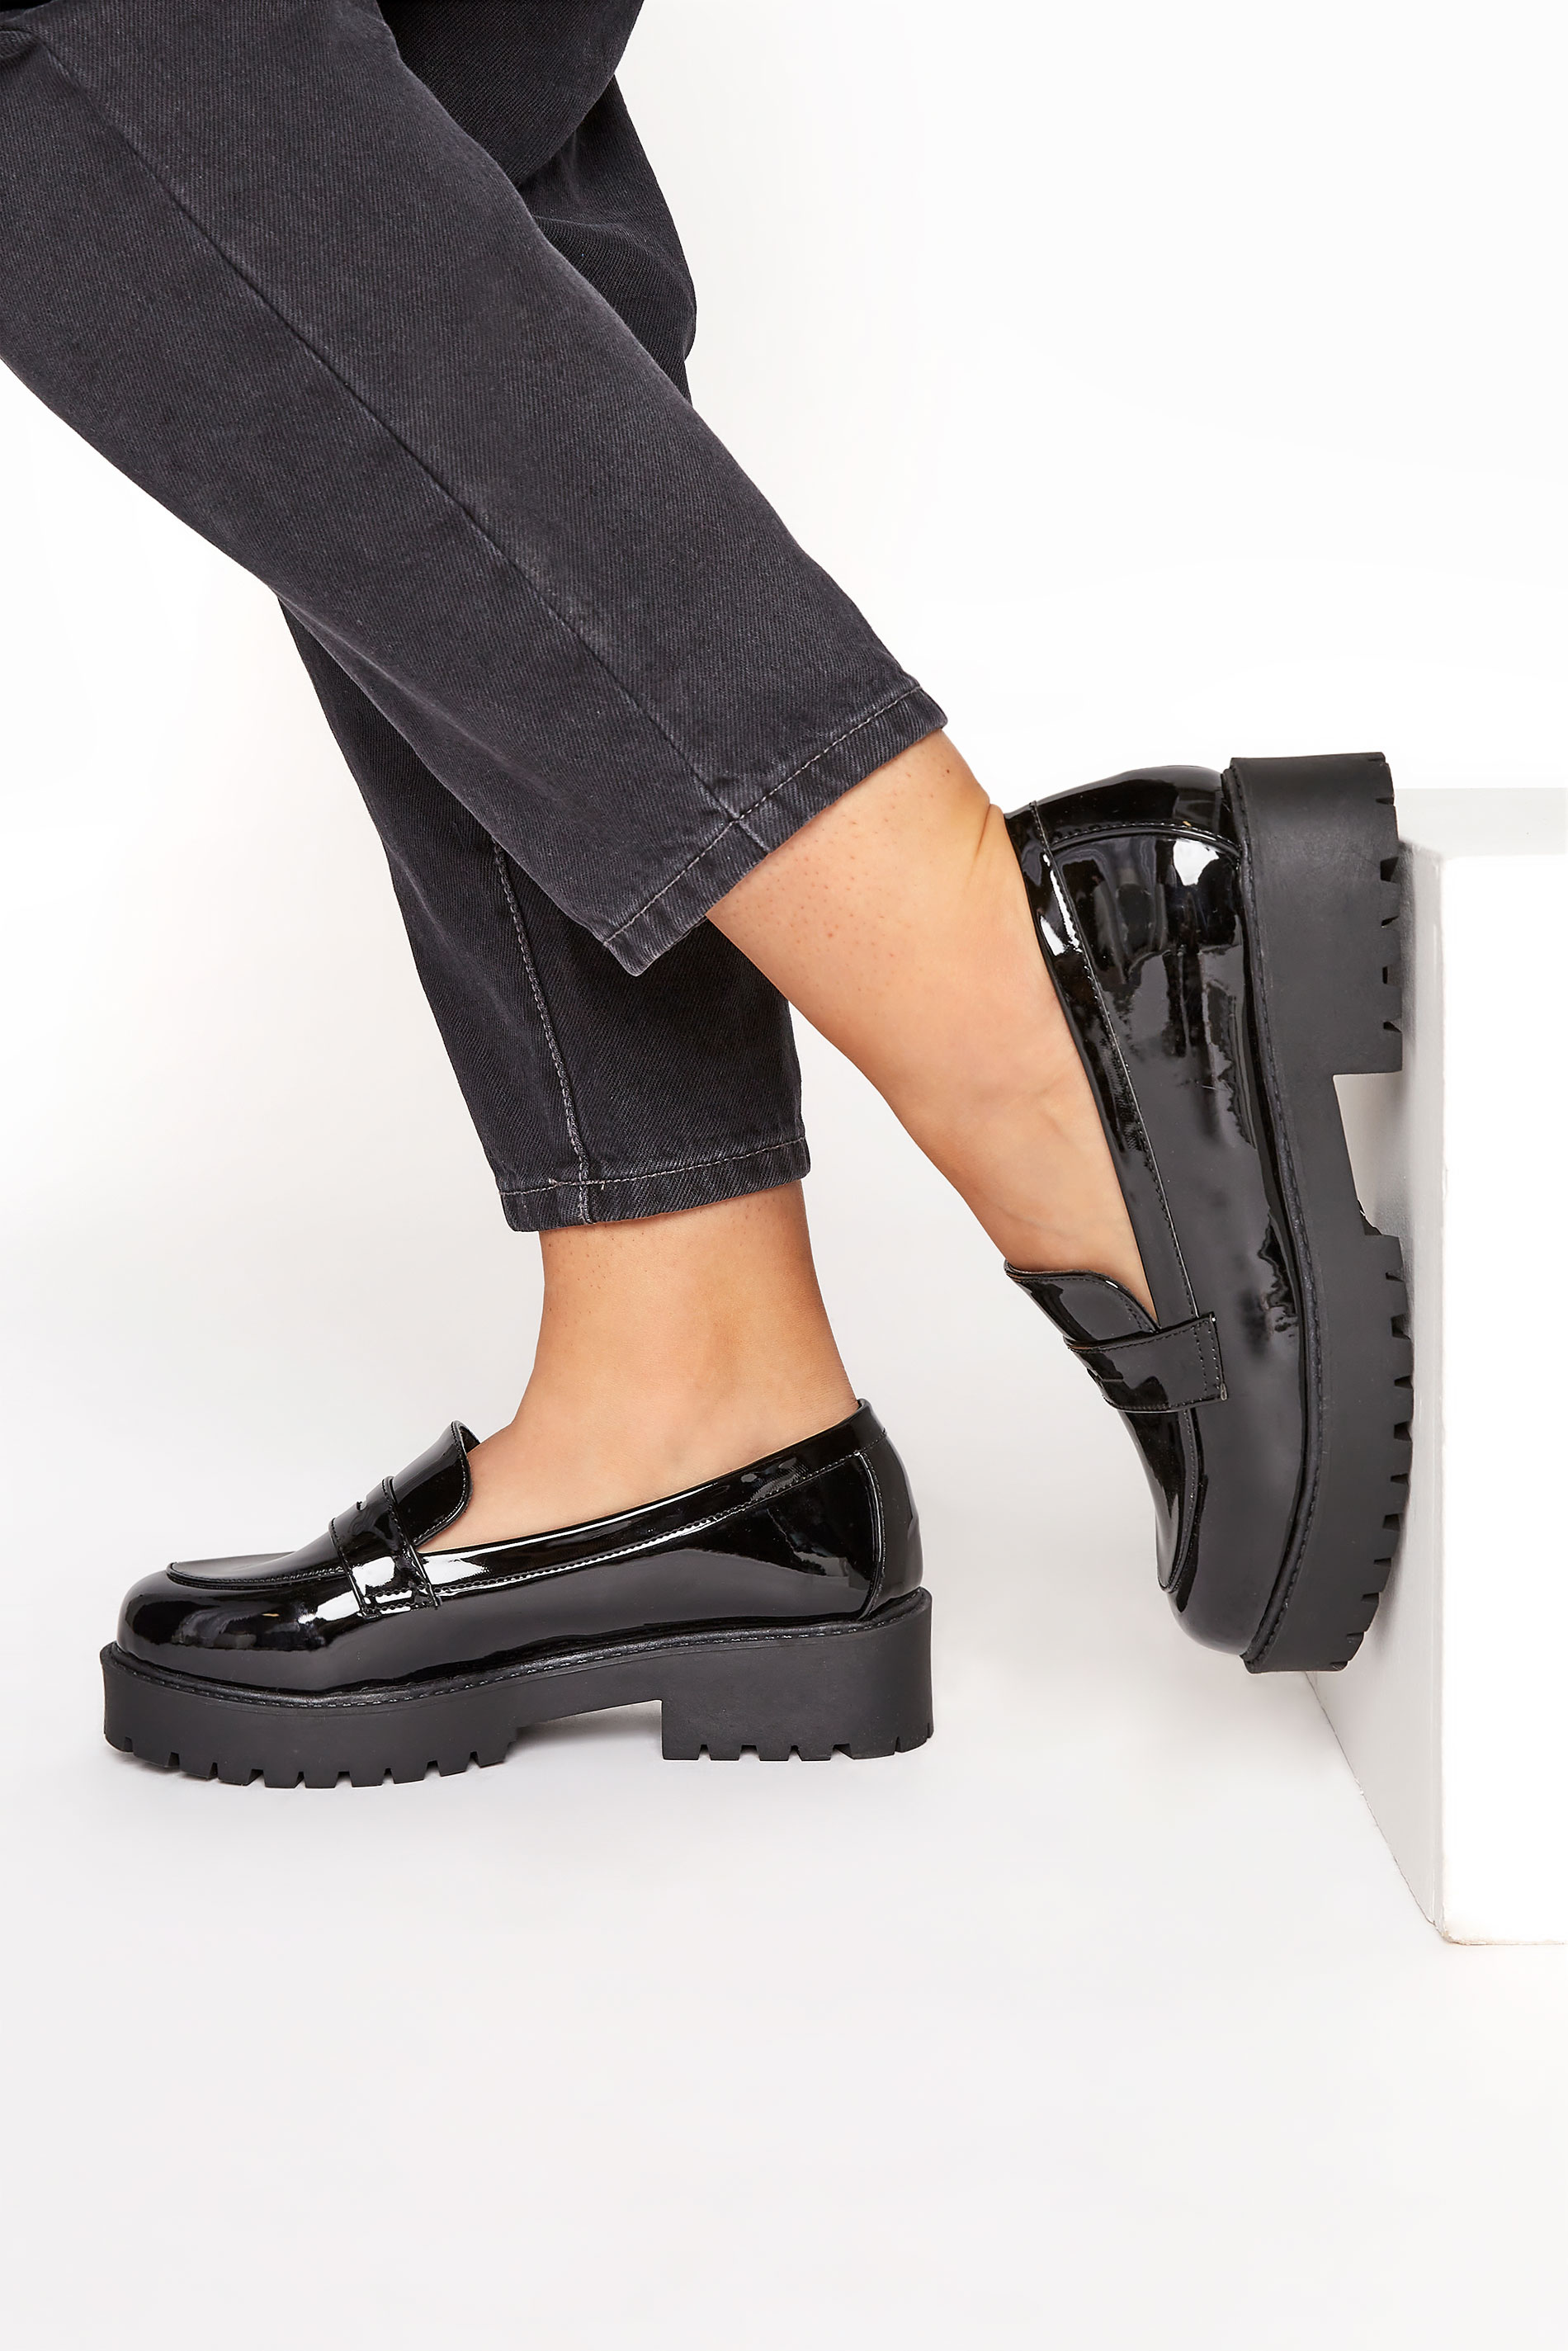 Black Patent Chunky Loafers In Extra Wide Fit_M.jpg